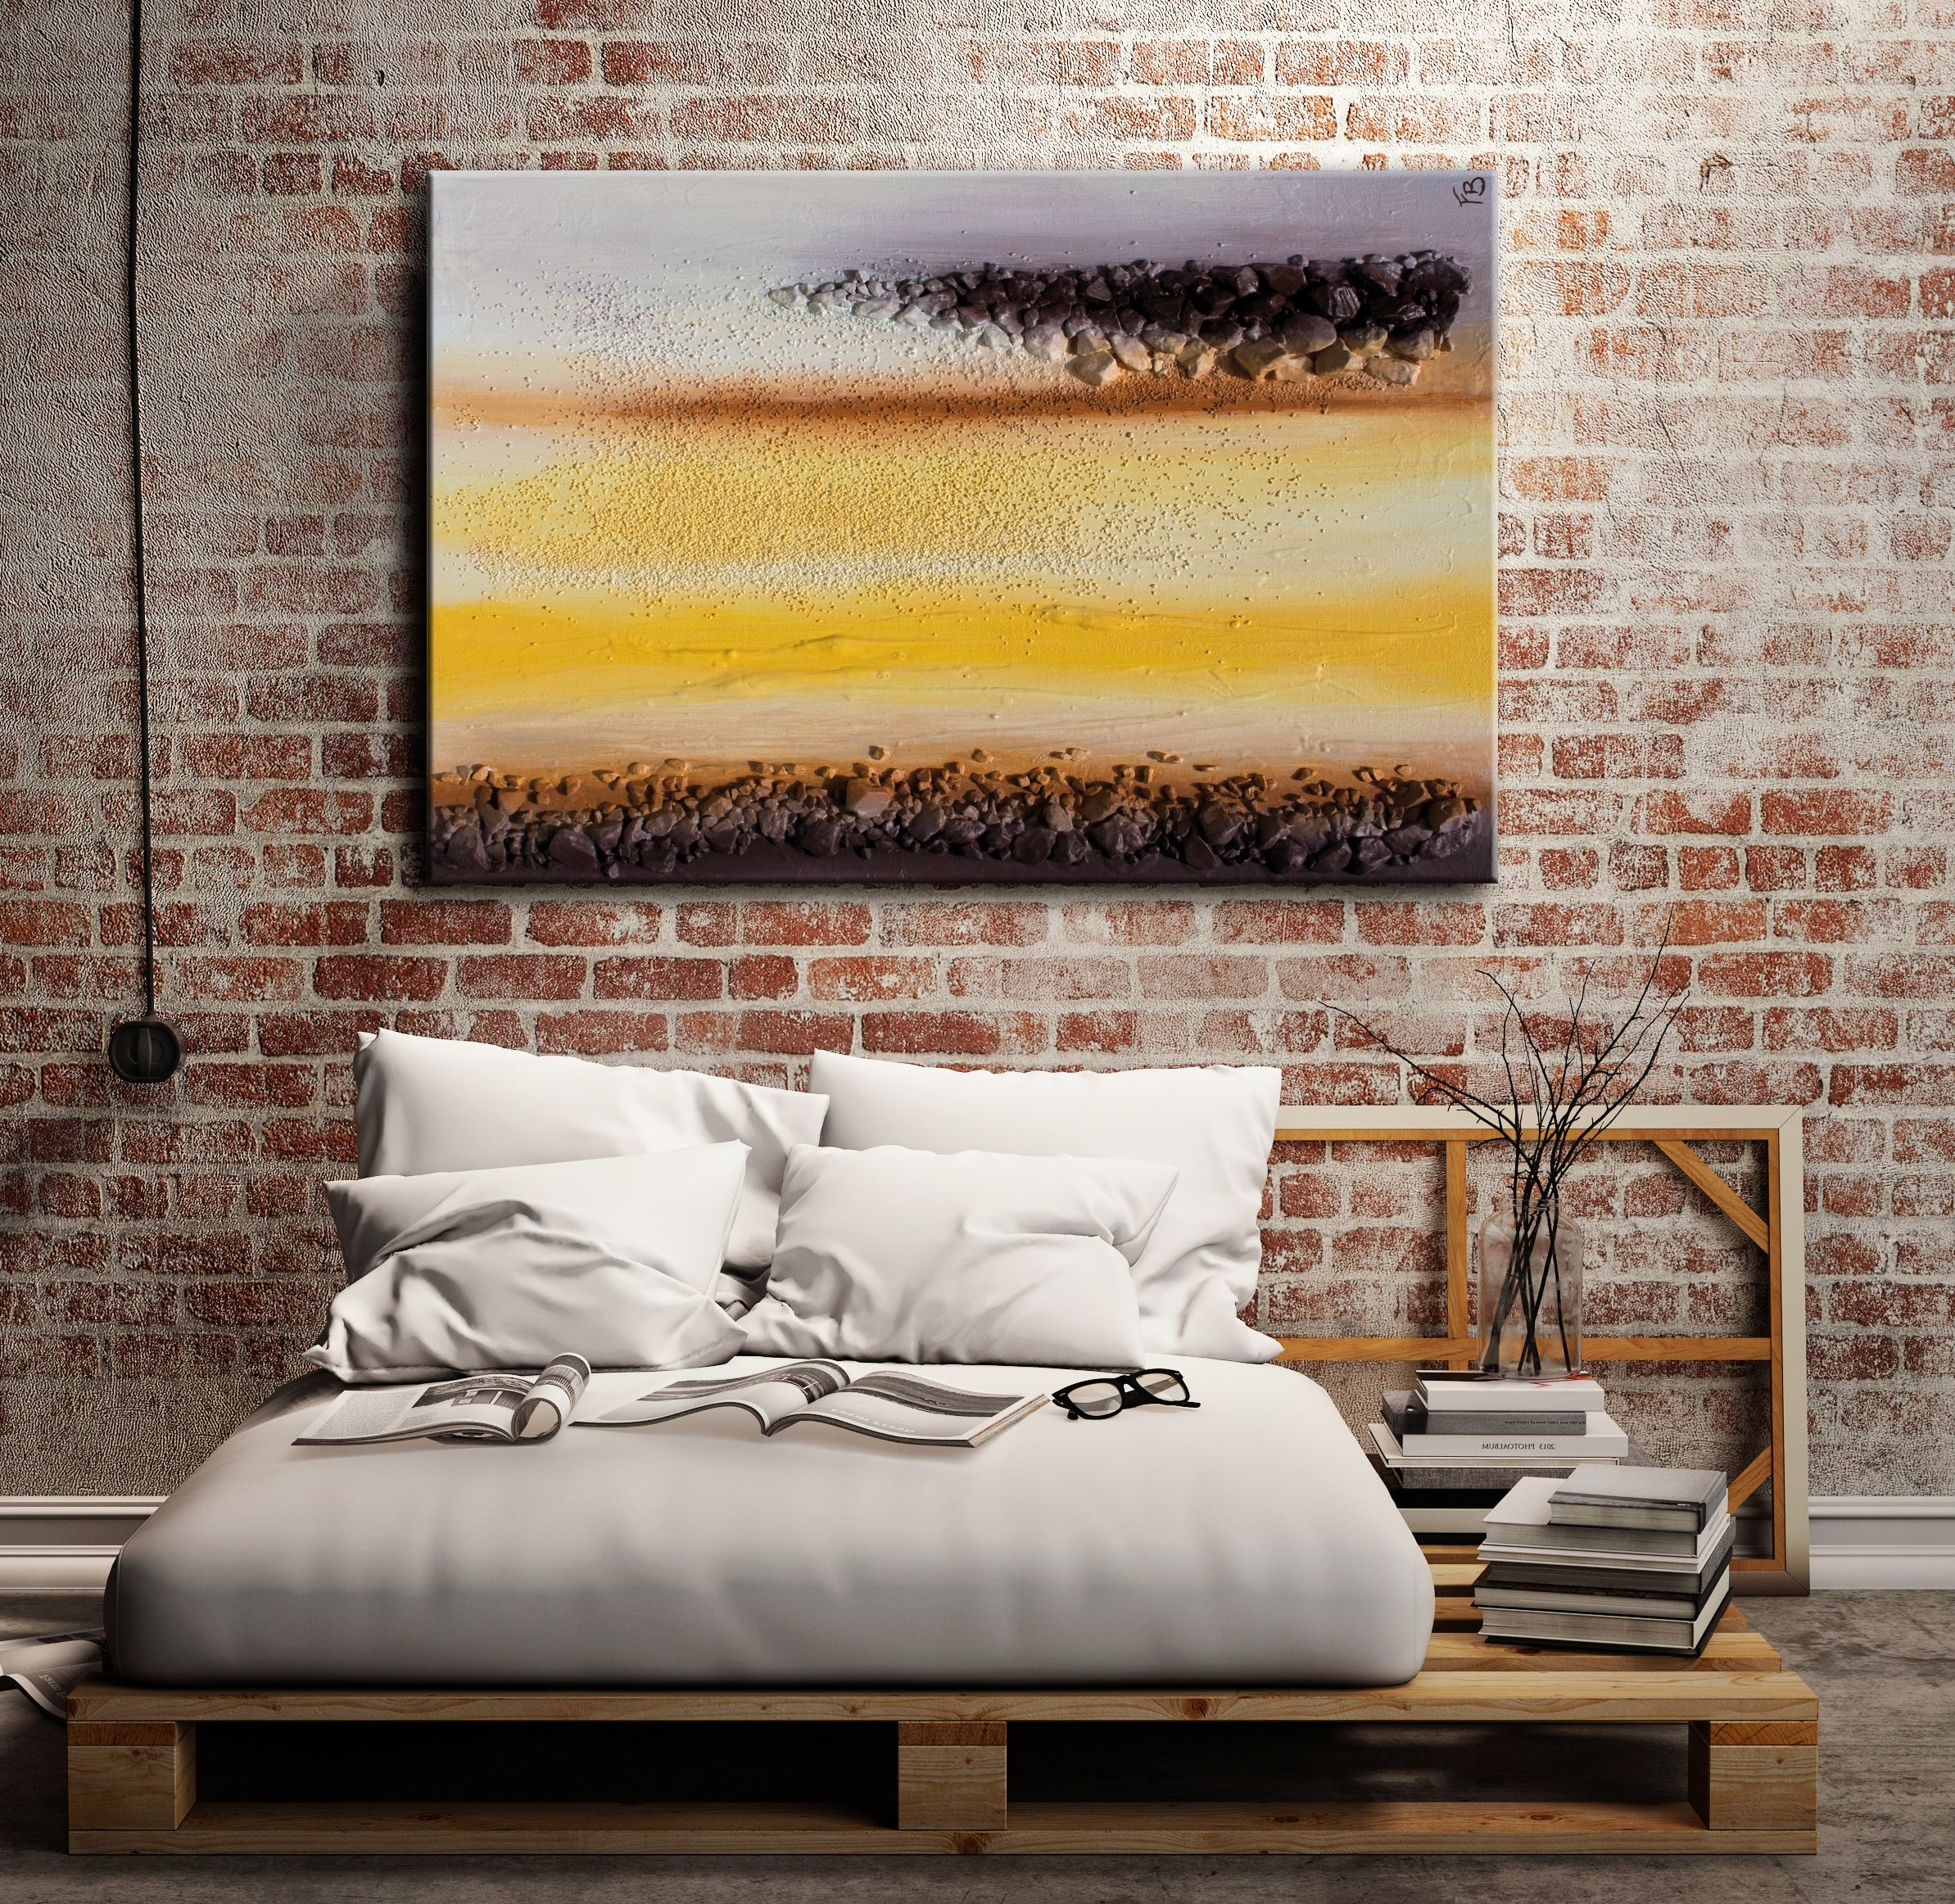 Printable rustic abstract art instant downloads contemporary livingroom wall decor modern painting home large poster also rh pinterest